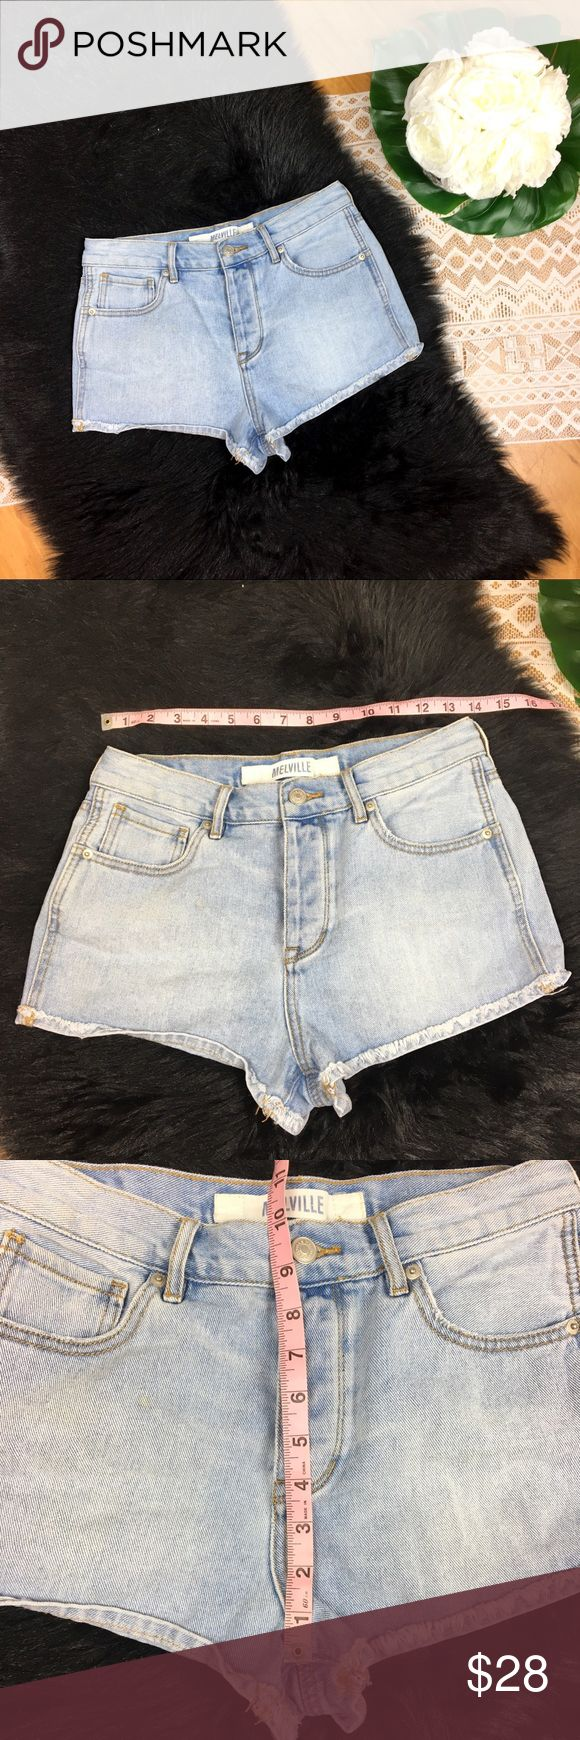 """Brandy Melville High Rise Button Fly Jean Shorts Brandy Melville High Rise Button Fly Jean Shorts. Size 28. All measurements in listing photos. Good used condition. Has a """"cut off"""" style hem that looks homemade but is meant to look that way. So wish these fit me! Brandy Melville Shorts Jean Shorts"""